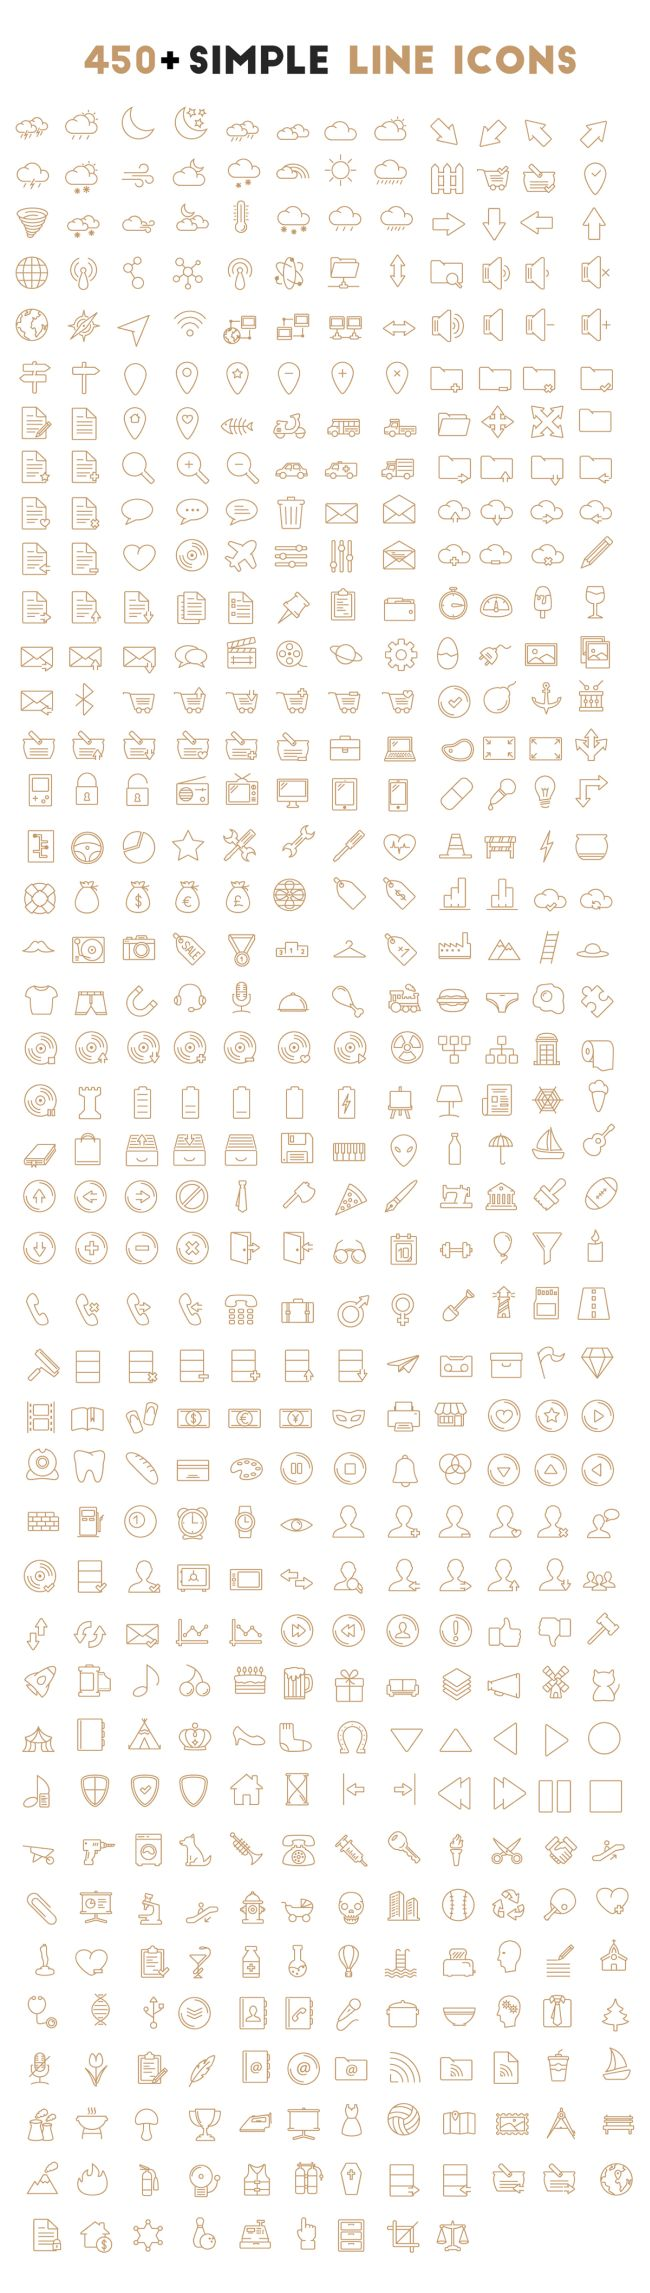 450+ free vector icons